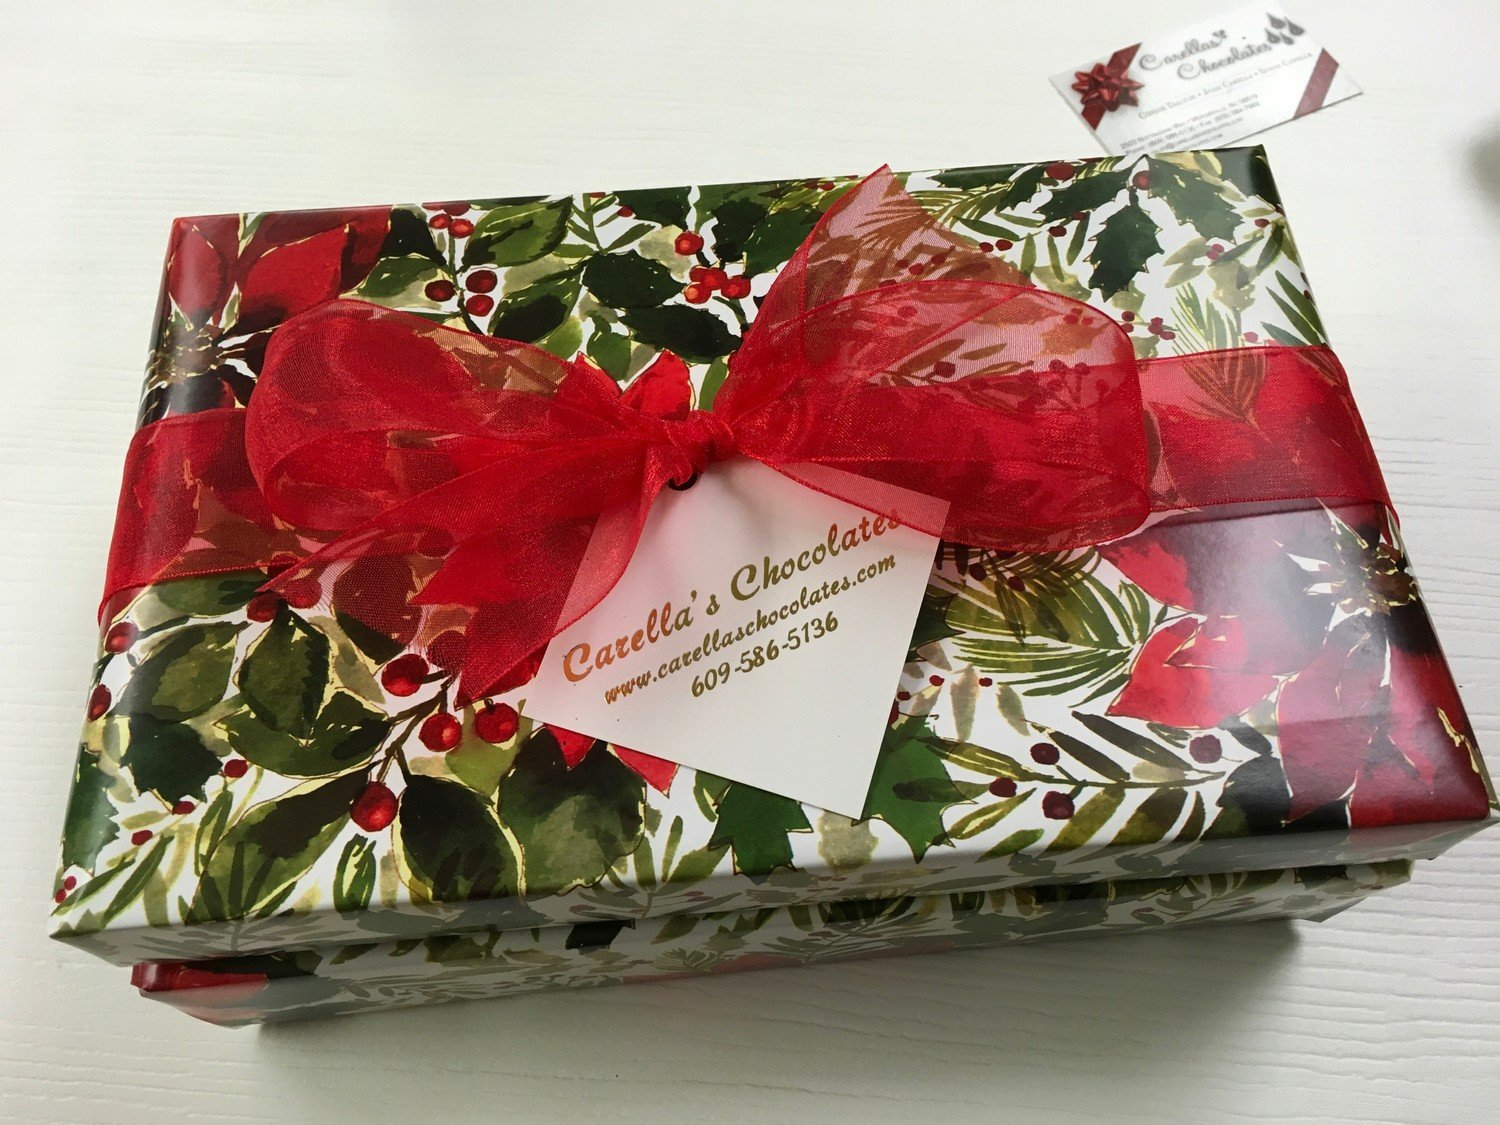 2 Tiered Holiday Chocolate Assortment wrapped and bowed.  1.1Lb. Assorted Chocolates Mk & Dk, 1.1Lb Assorted Truffles Mk & Dk